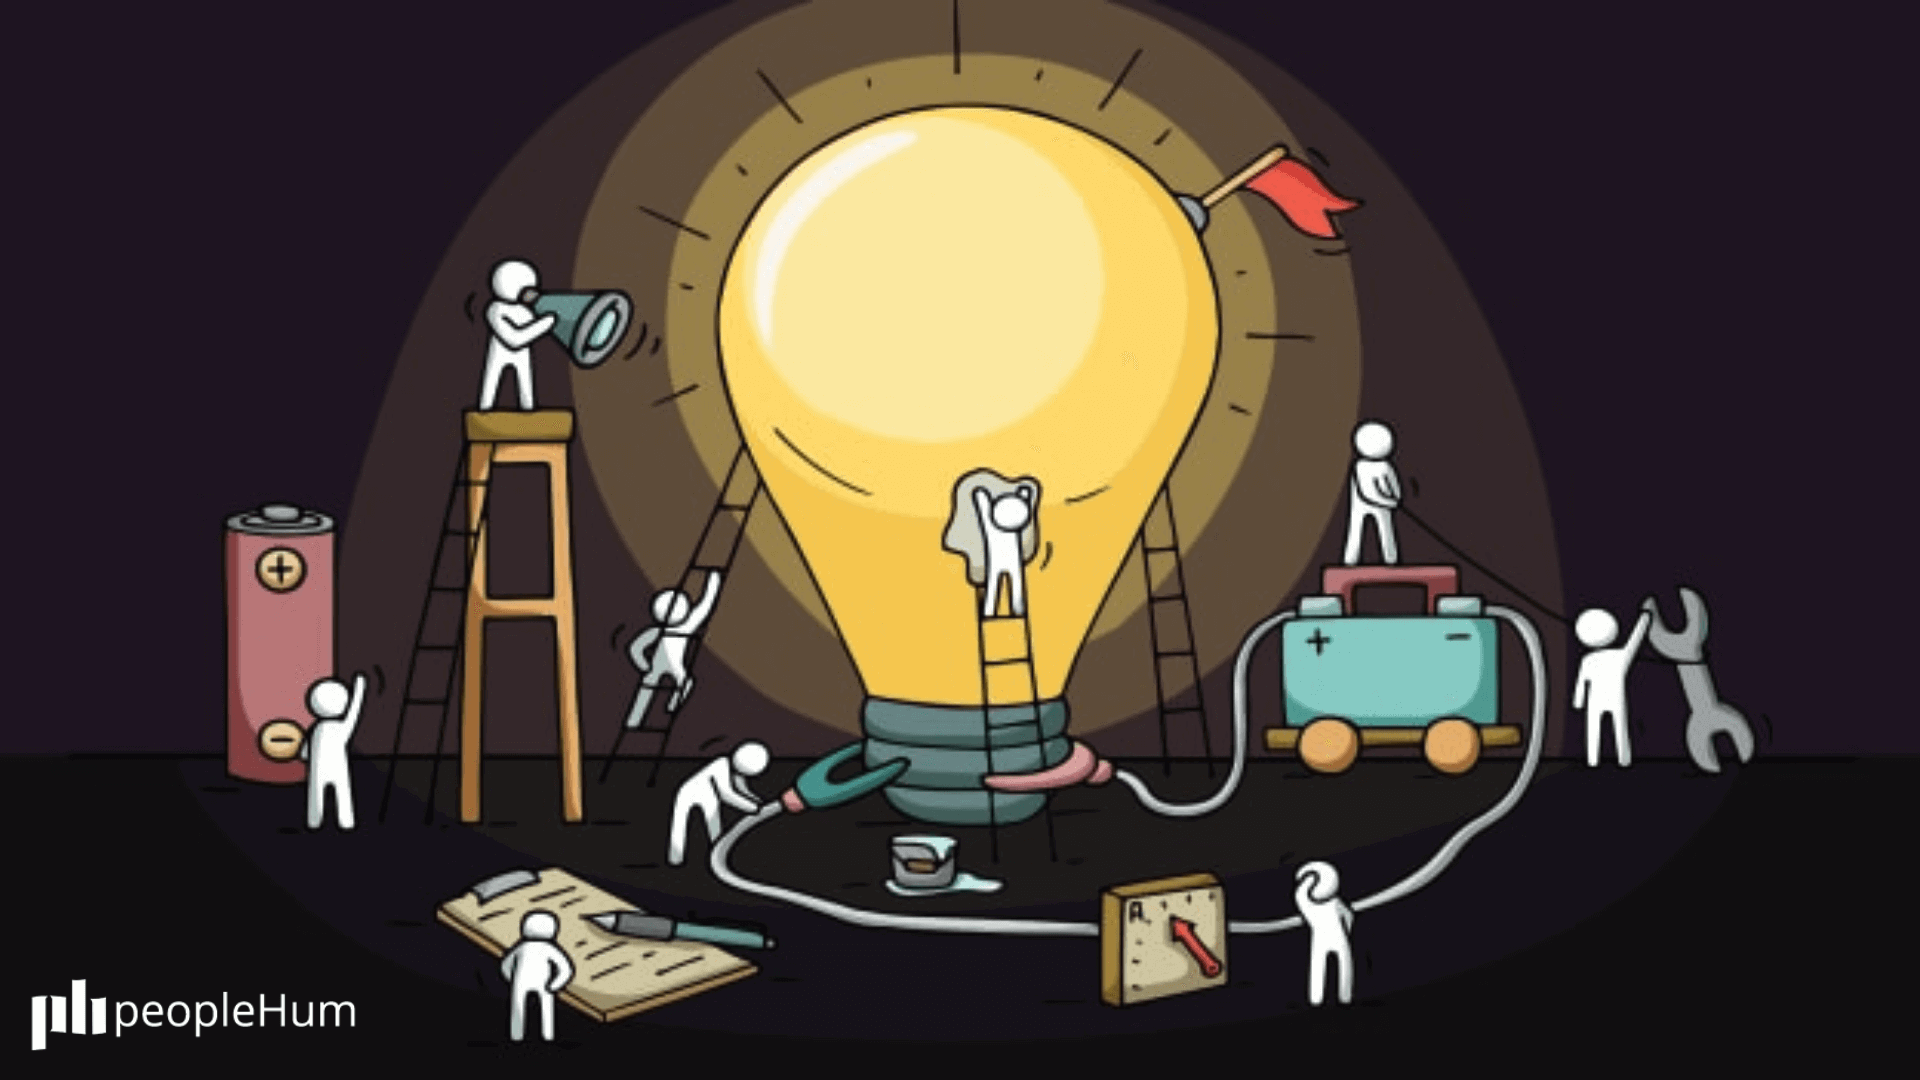 6 ways leaders can build a culture of innovation | peopleHum